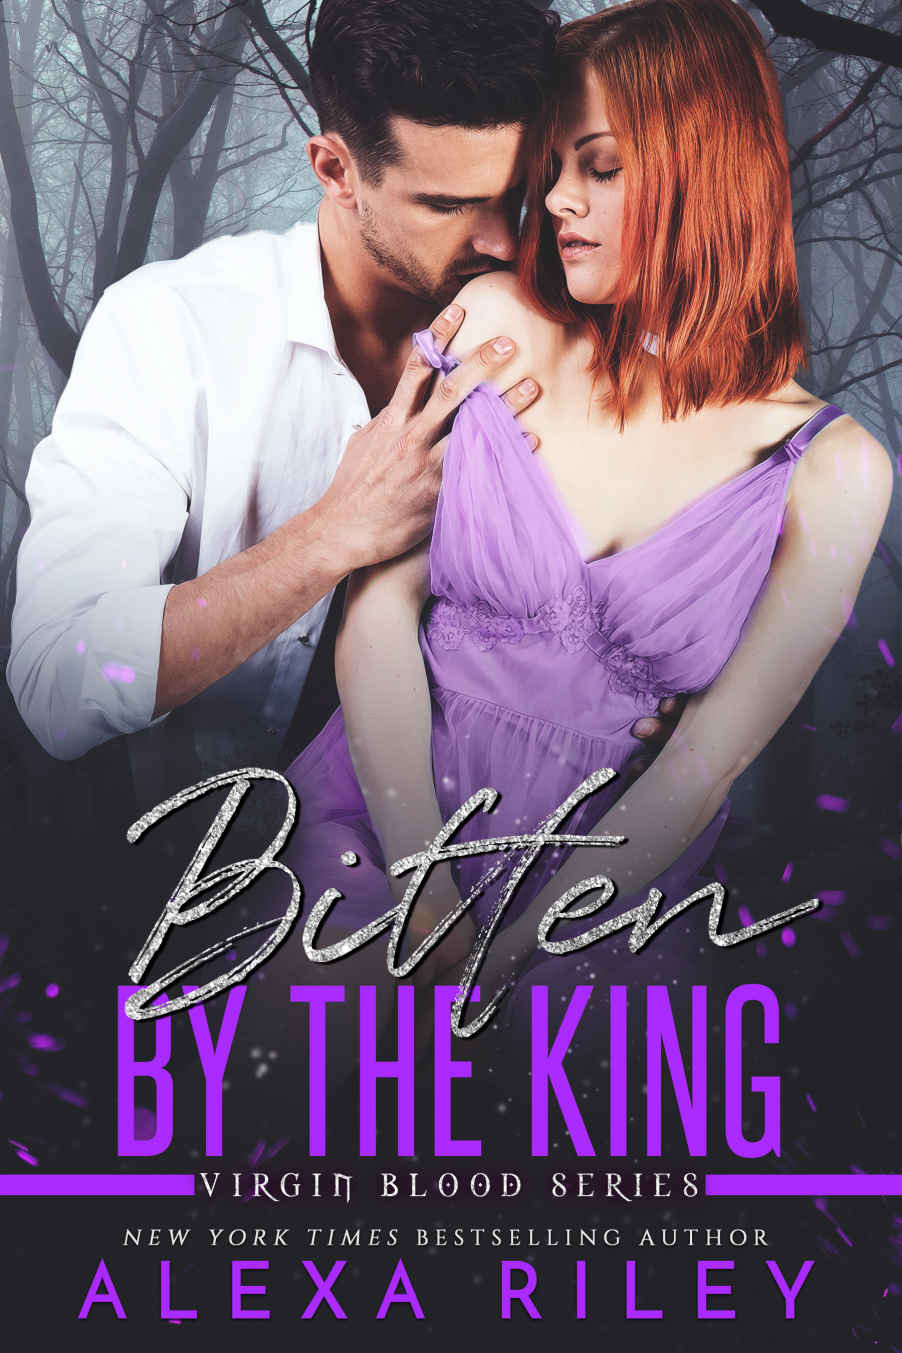 Bitten by the King: 1st Edition Pdf Free Download